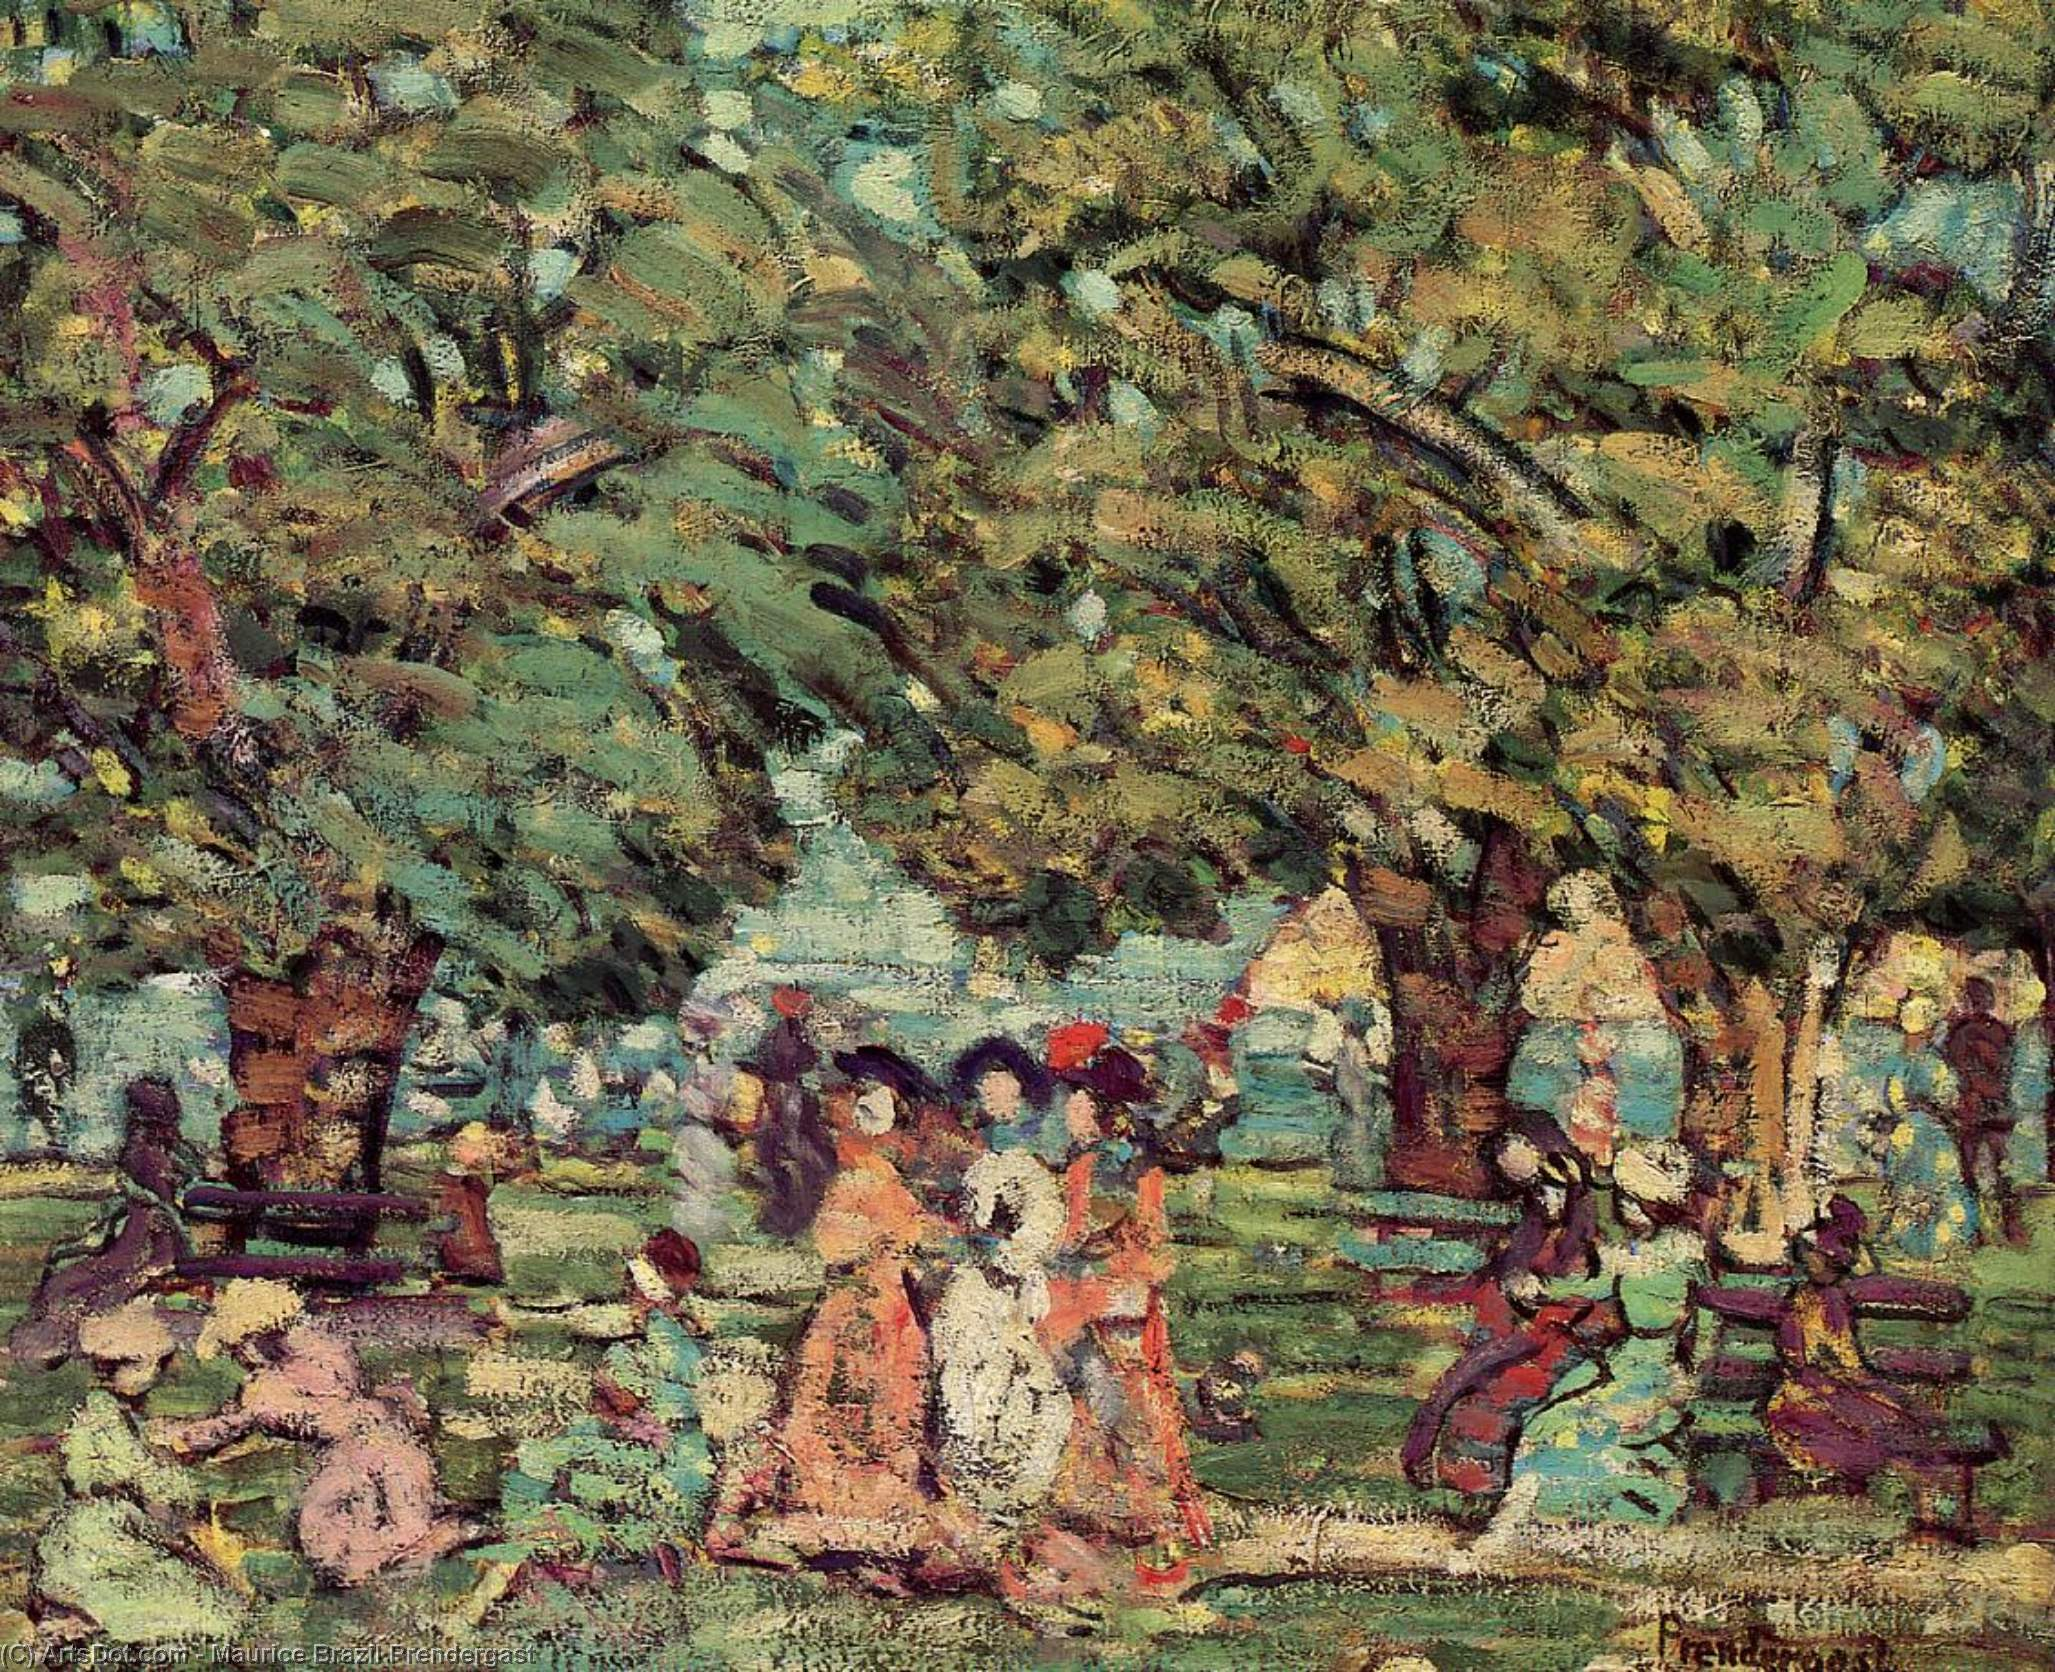 Wikioo.org - The Encyclopedia of Fine Arts - Painting, Artwork by Maurice Brazil Prendergast - Under the Trees